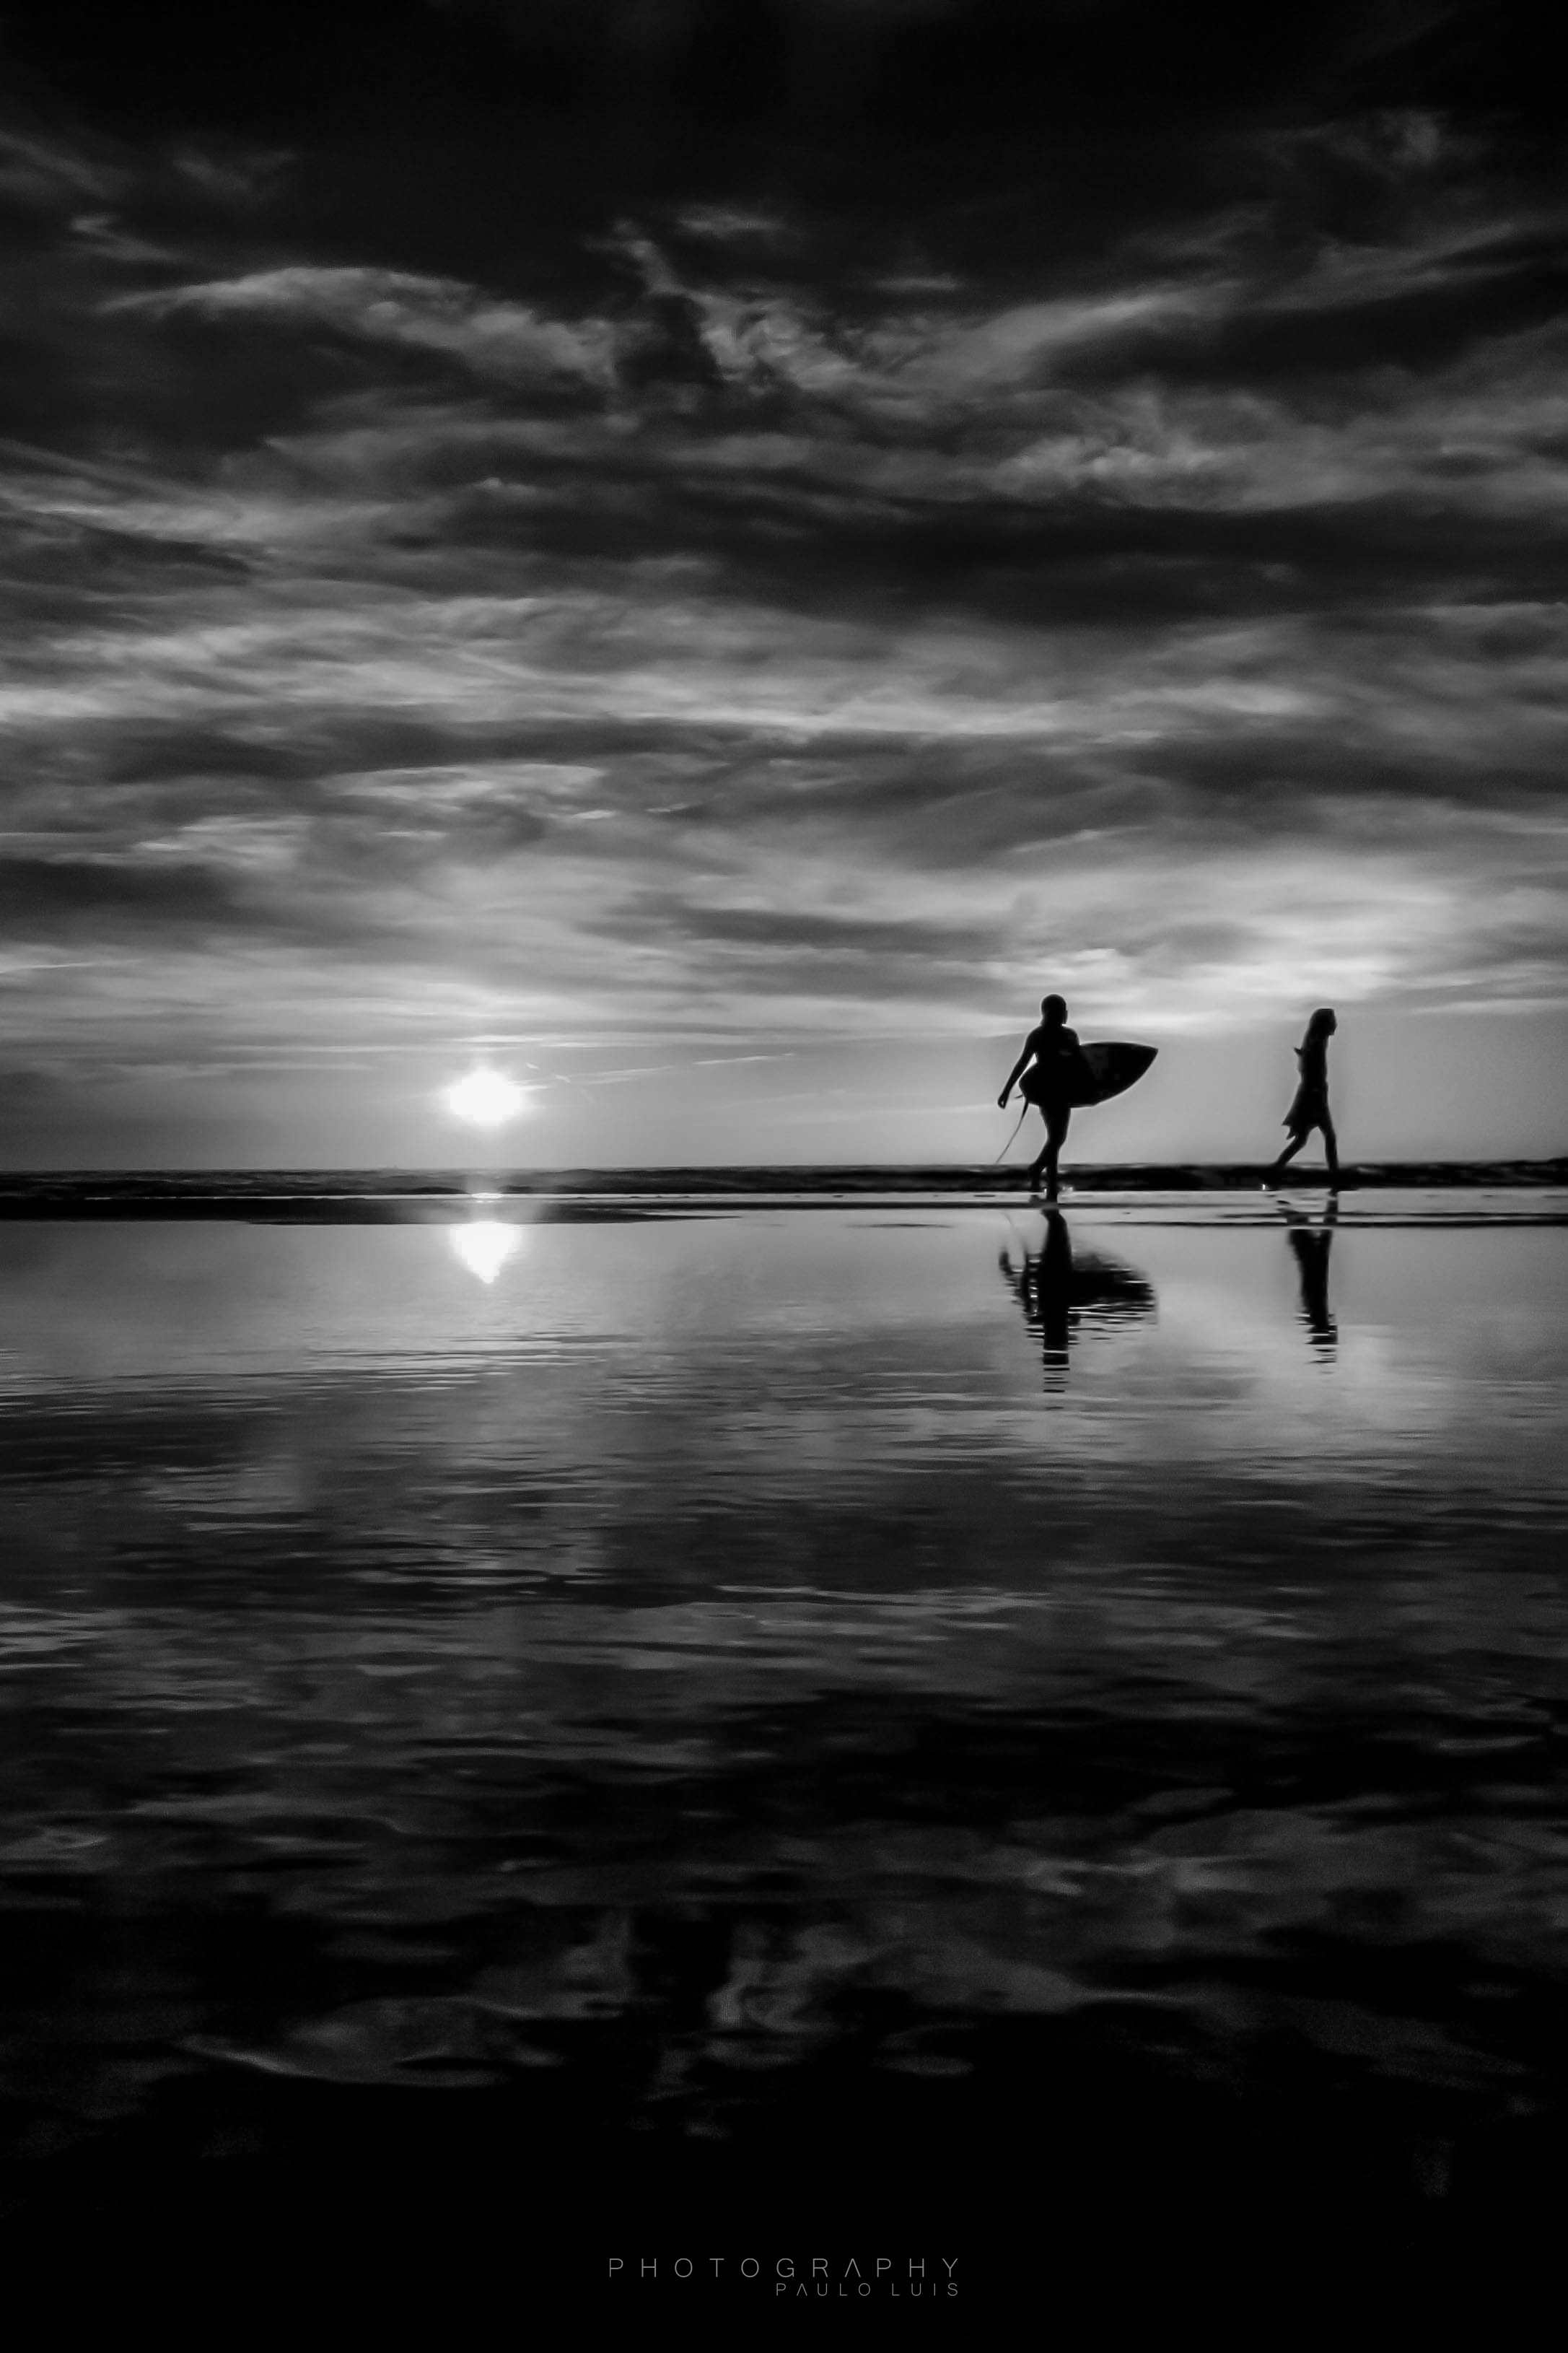 © Paulo Luis - I go with you...